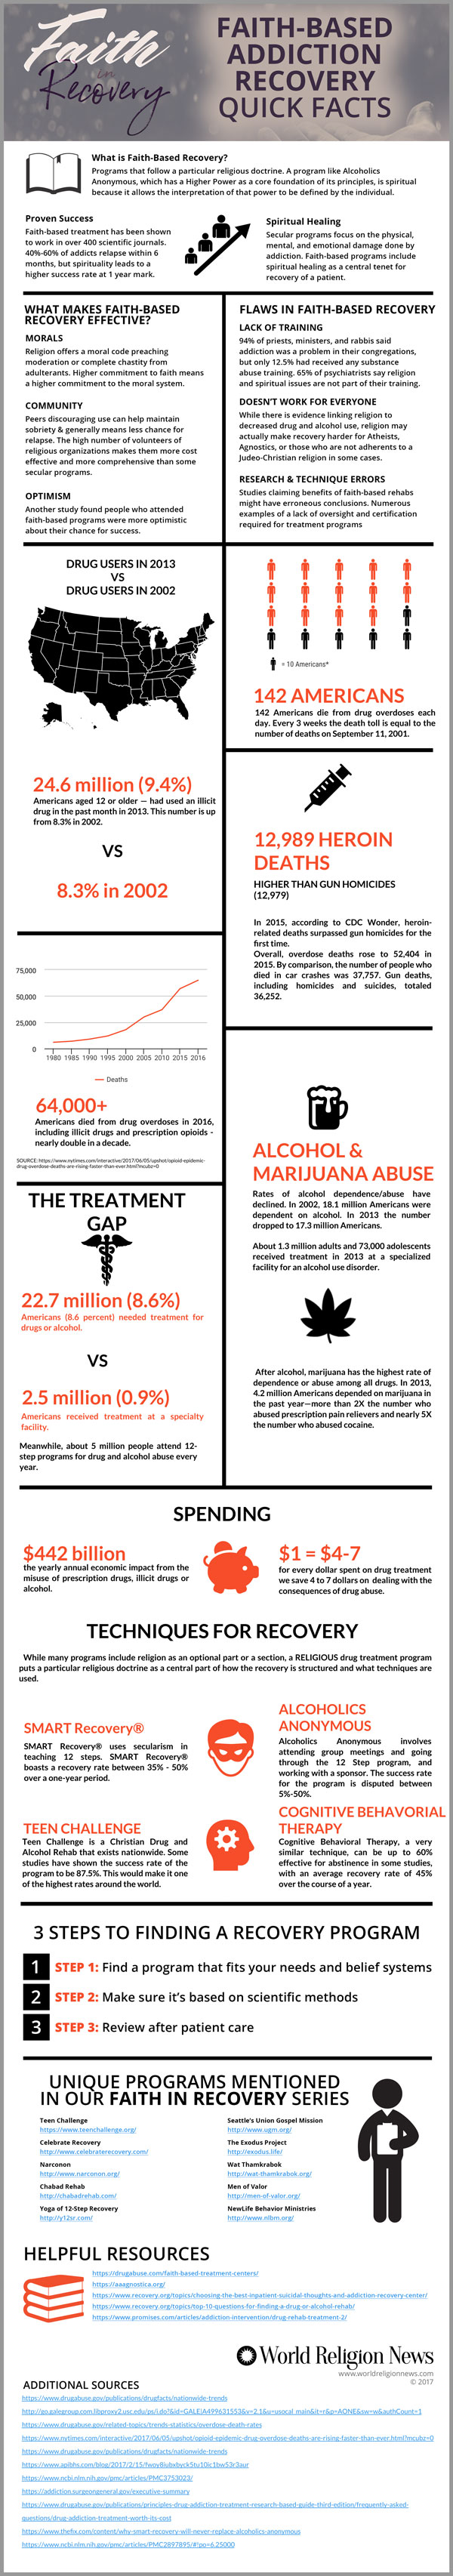 Faith-Based Addiction Recovery Quick Facts Infographic